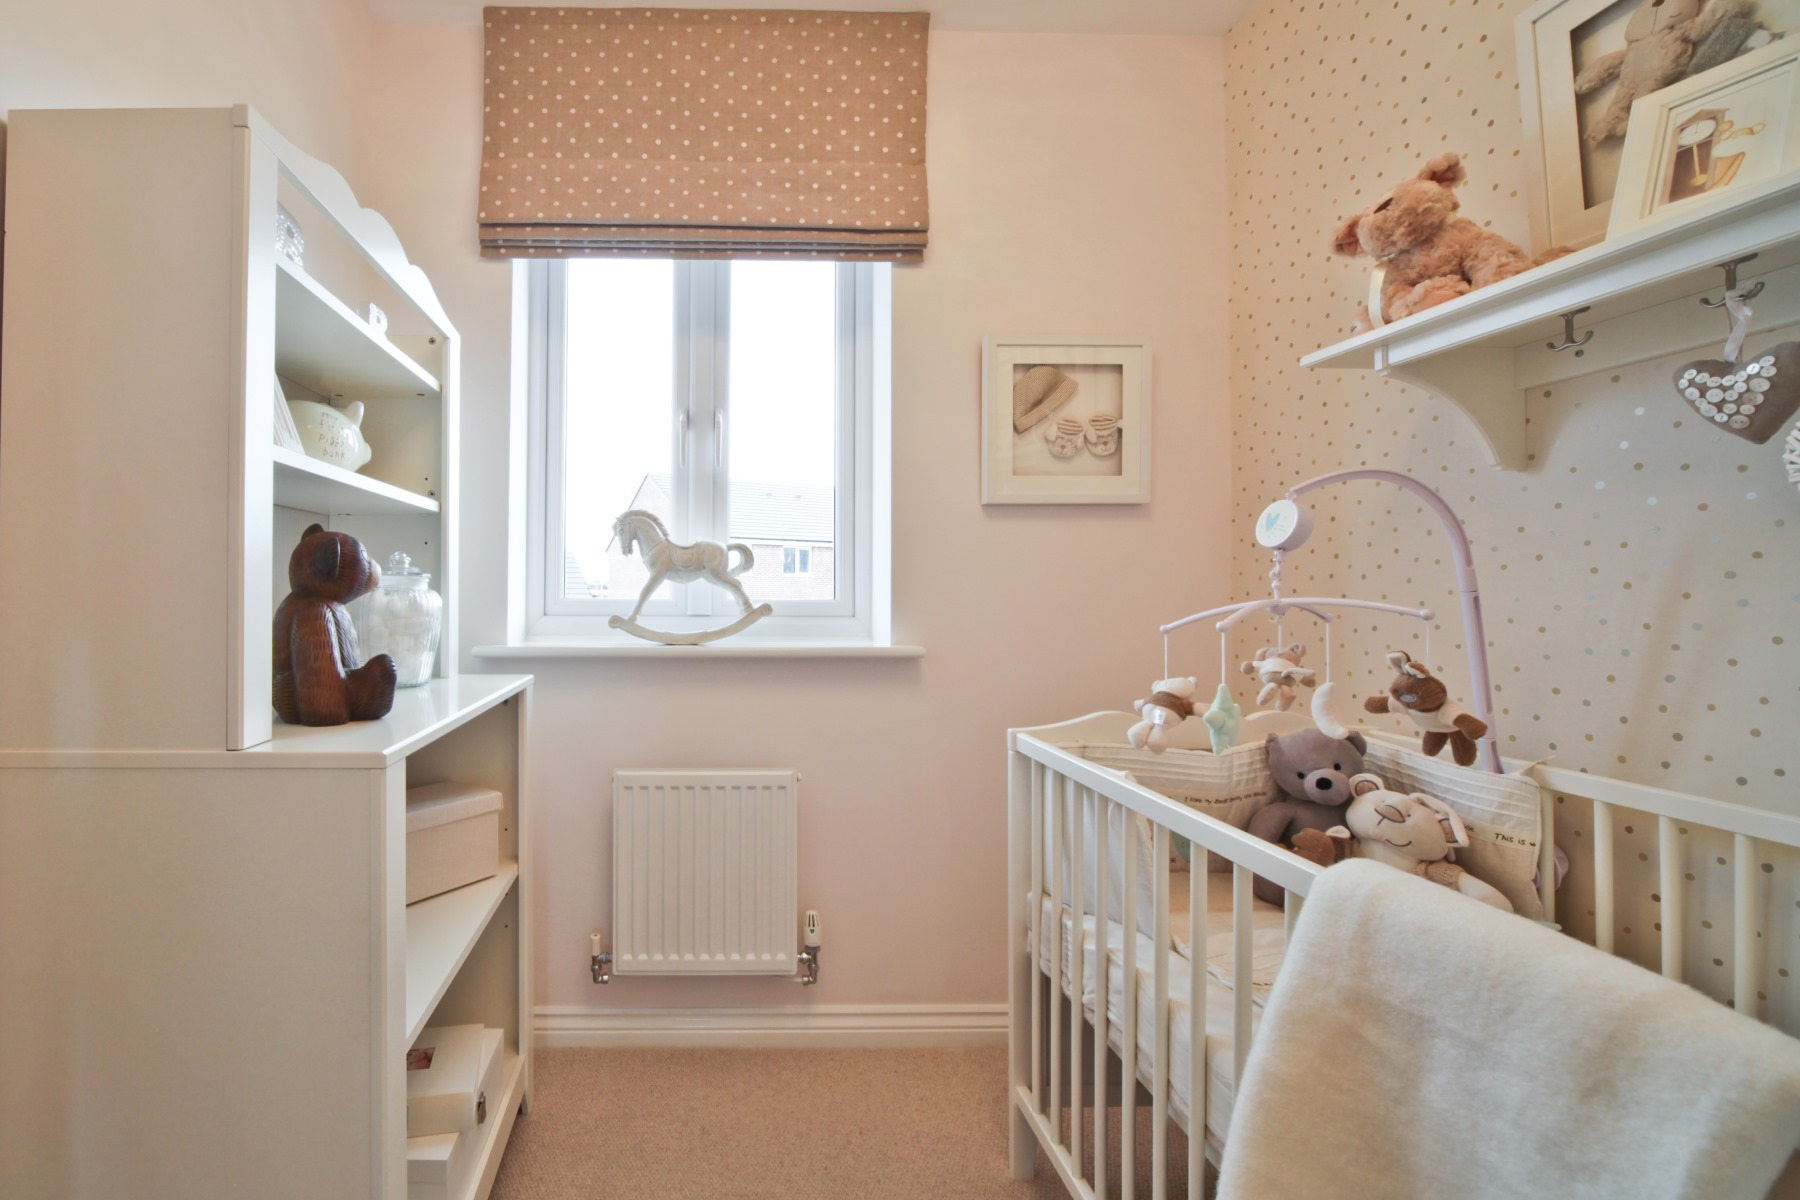 Knutsford Showhome - Nursery Bedroom 3